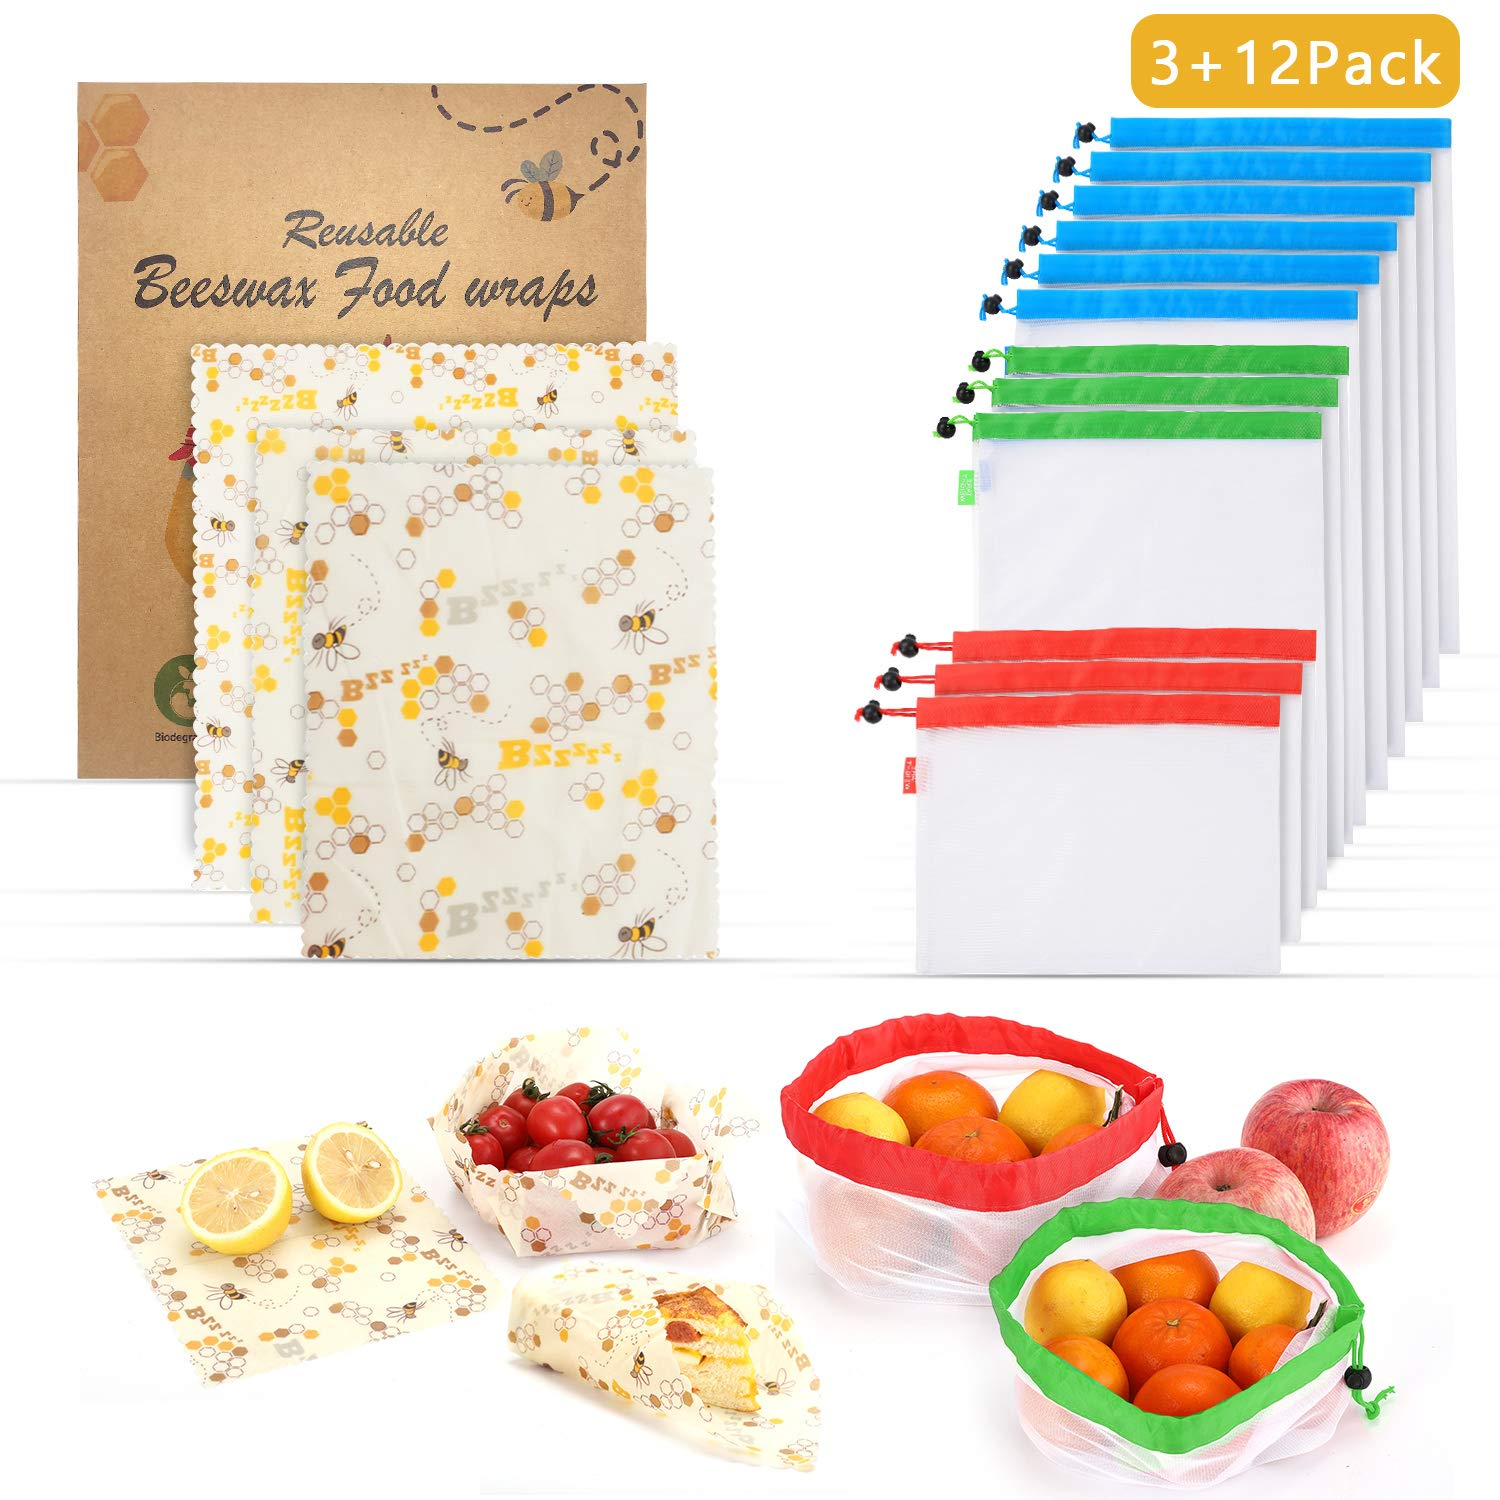 AKIMO Reusable Beeswax Food Wrap Produce Bags - 3 Pack Organic Sustainable Beeswax Wraps Sandwich Food Storage Wrap and 12 Pack Reusable Produce Bags With Drawstring - Washable Eco Friendly